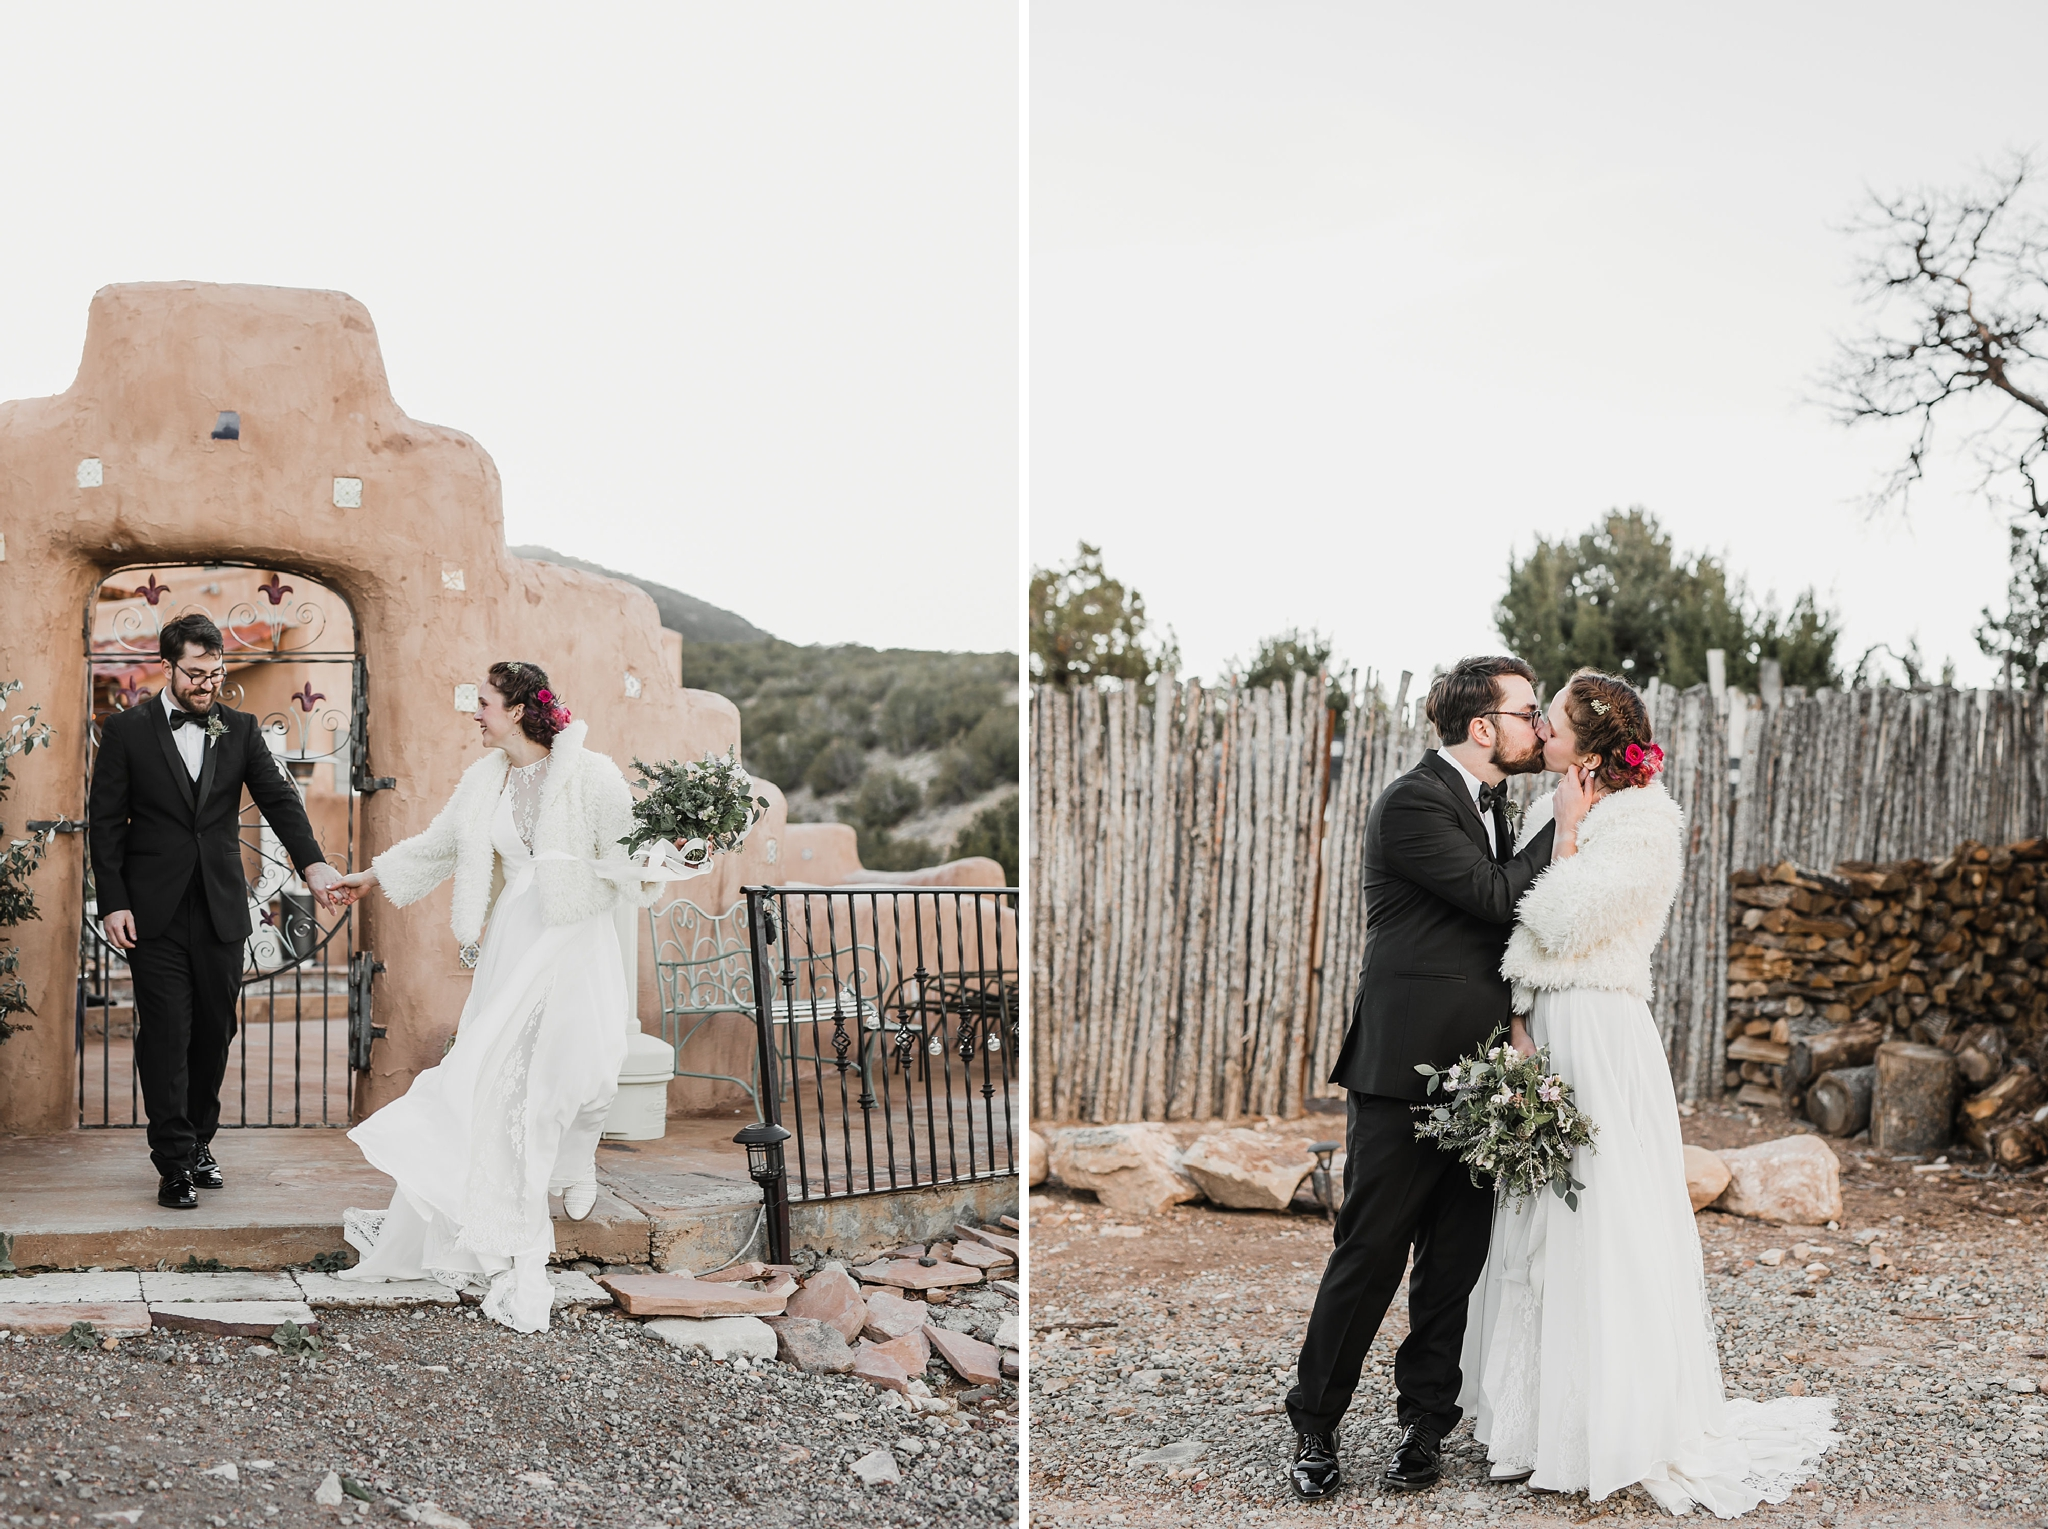 Alicia+lucia+photography+-+albuquerque+wedding+photographer+-+santa+fe+wedding+photography+-+new+mexico+wedding+photographer+-+new+mexico+wedding+-+santa+fe+wedding+-+hacienda+dona+andrea+-+hacienda+dona+andrea+wedding_0027.jpg